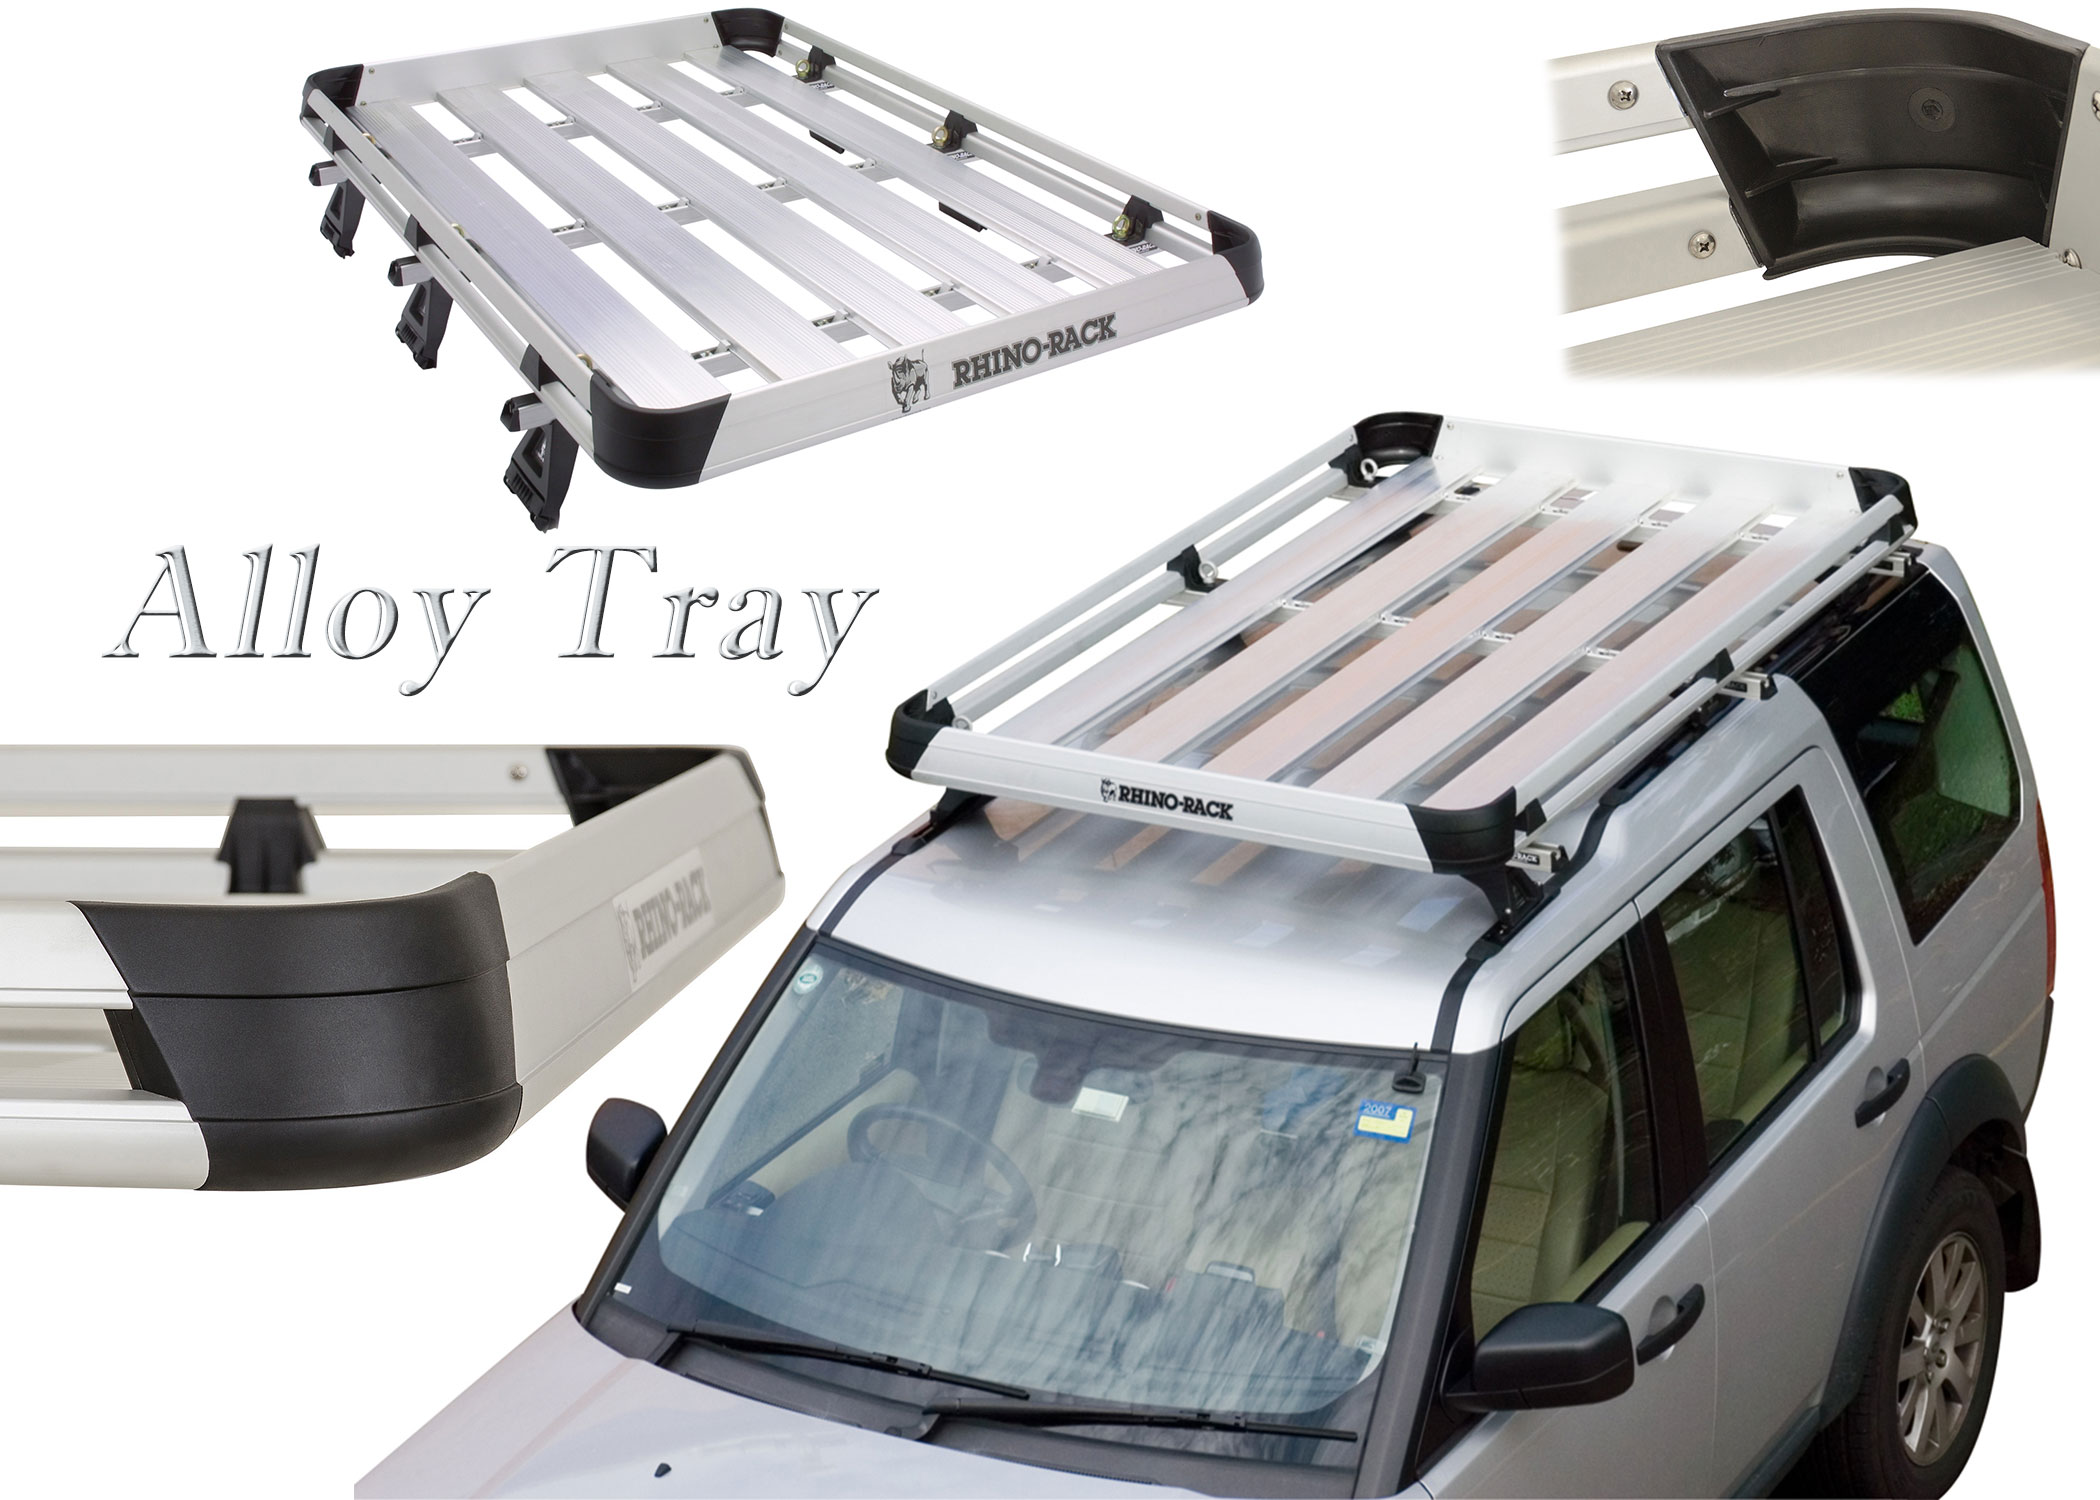 for aa box hub travelhub rack with roof and dos travelling don ts suv top travel a ladder when donts